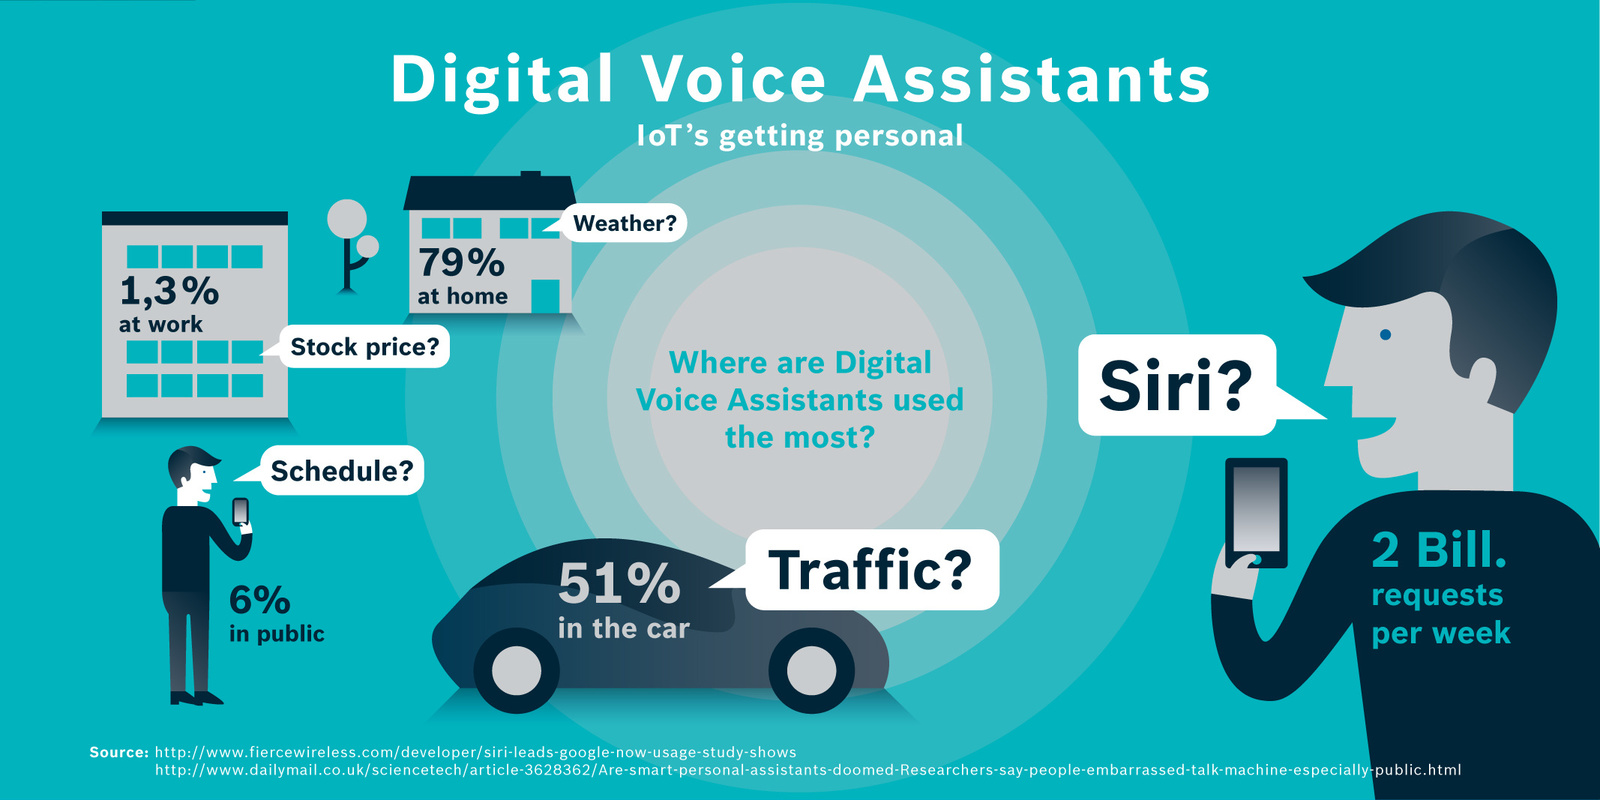 Where are Digital Voice Assistants used most?